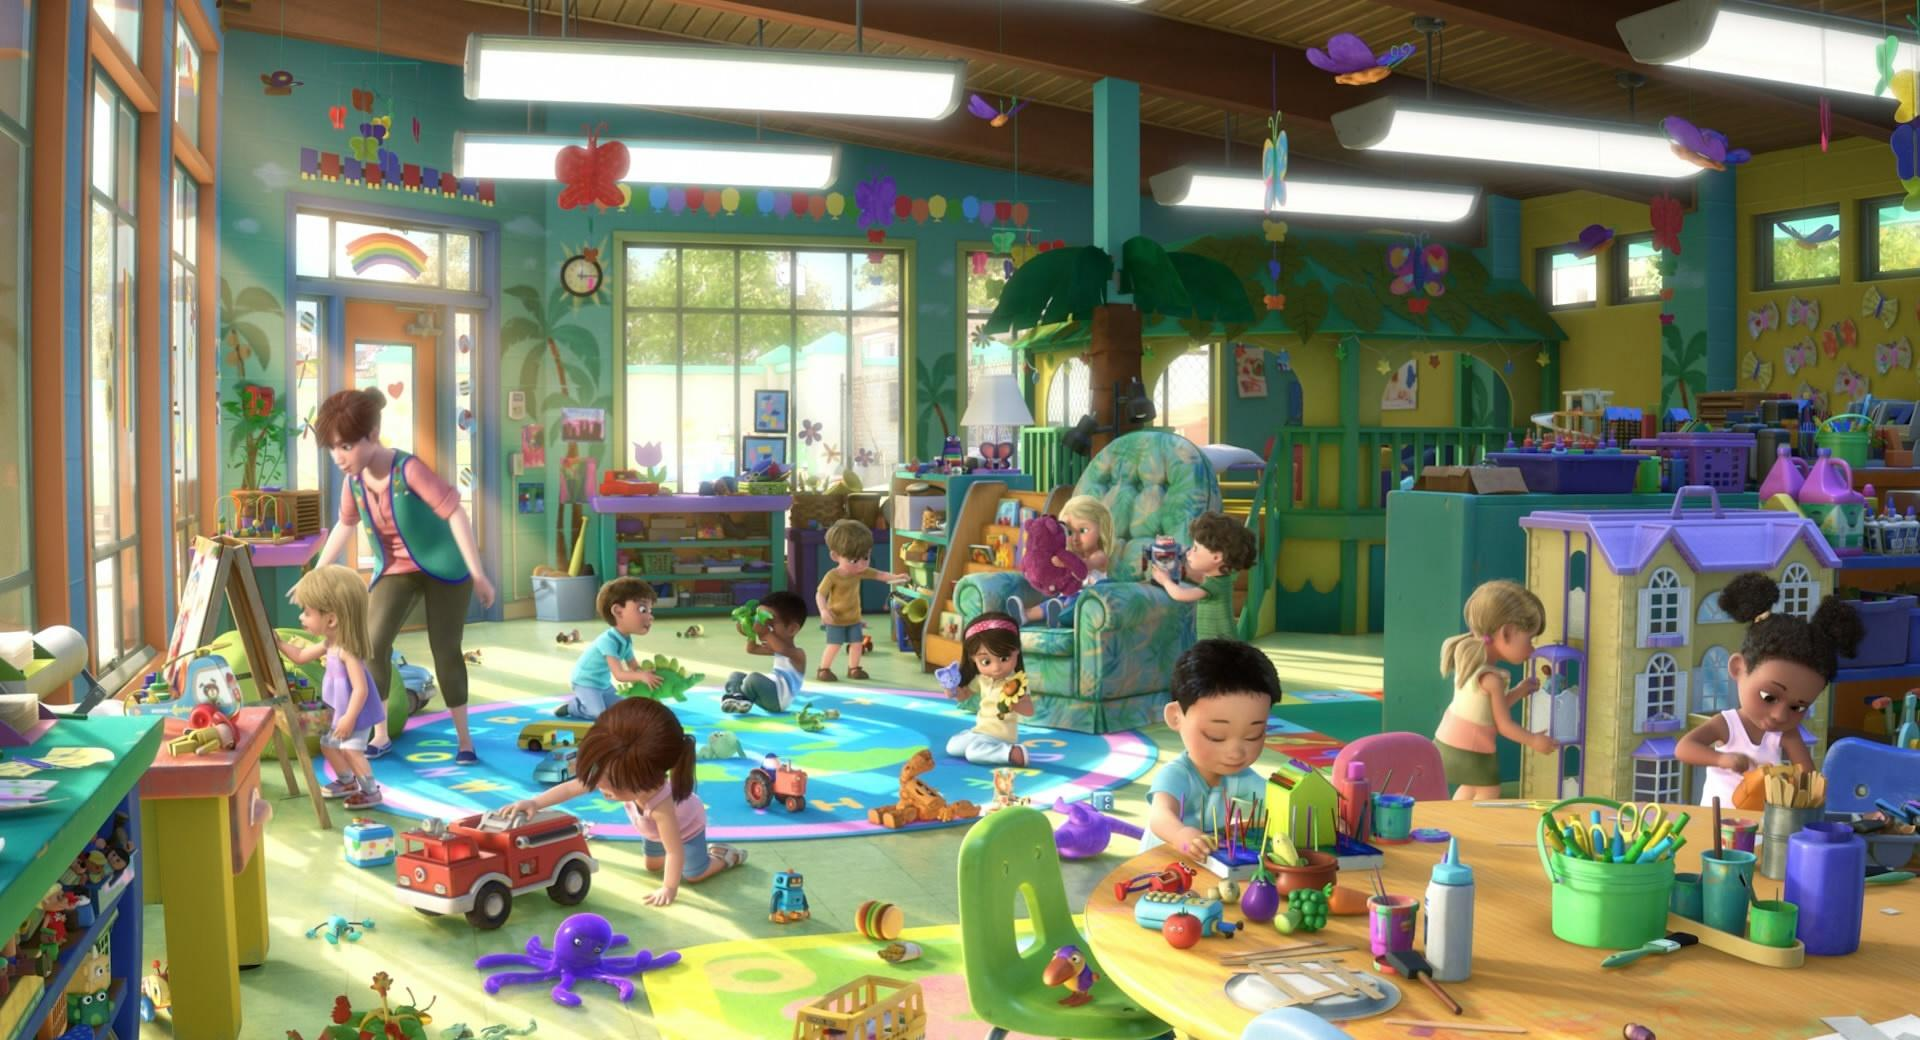 Toy Story 3 Playtime wallpapers HD quality